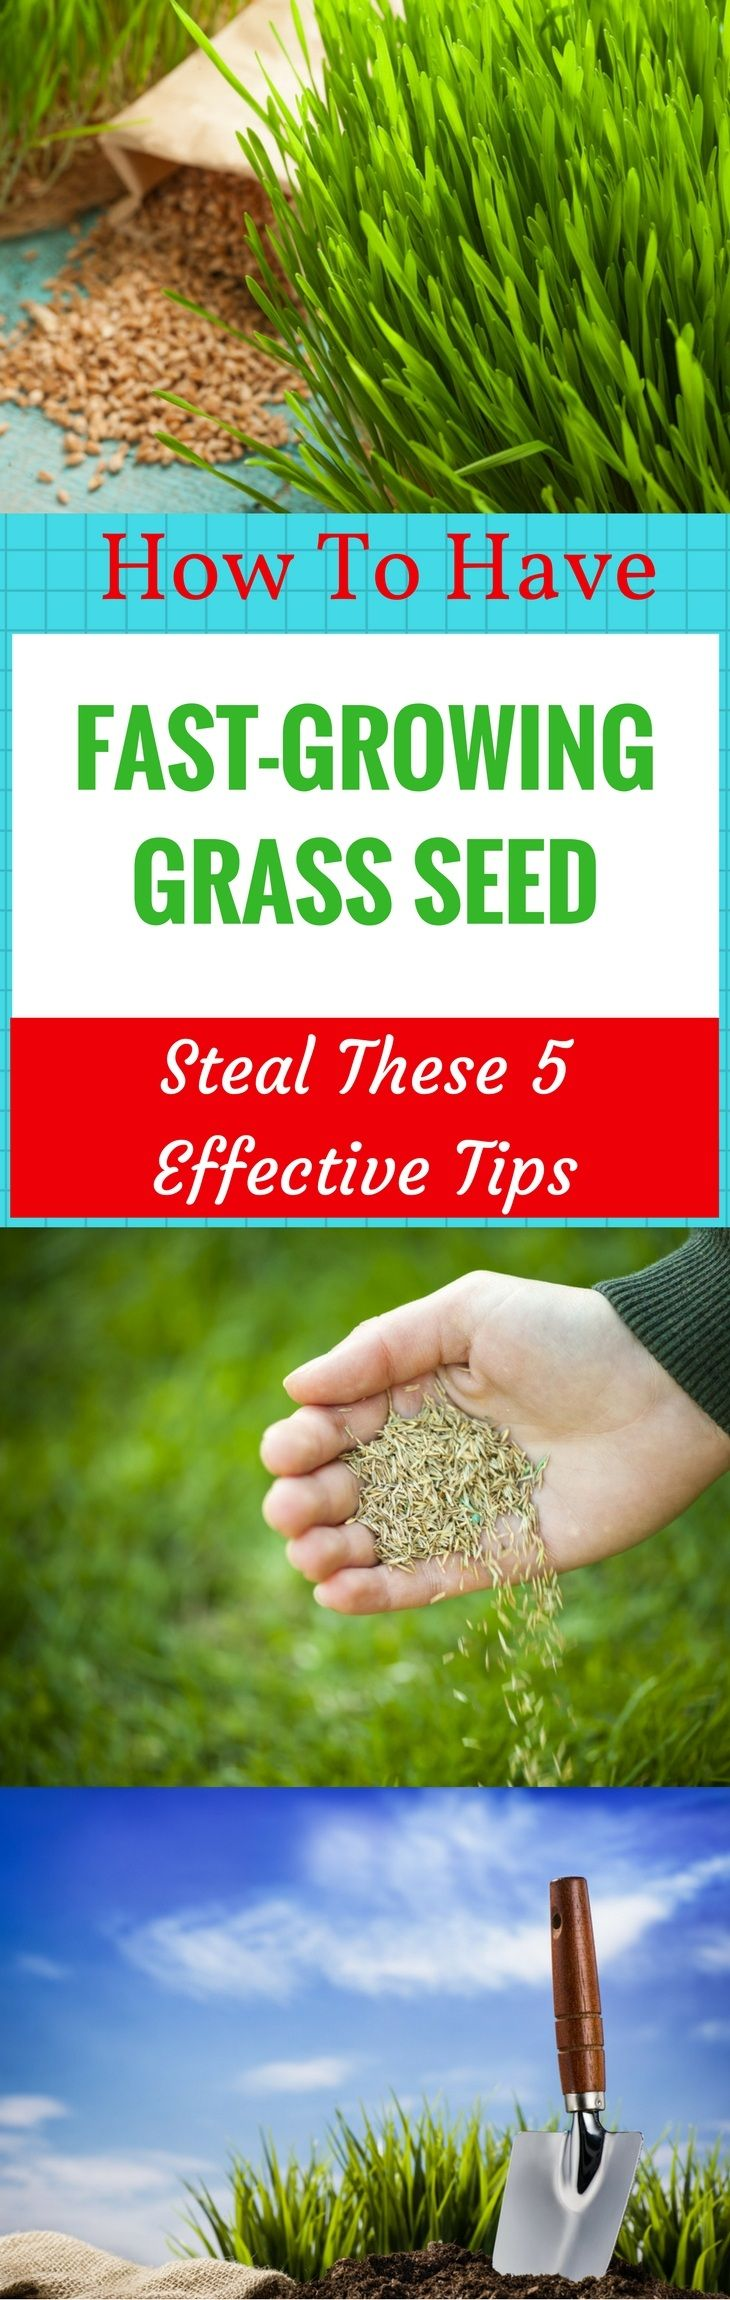 How to have fastgrowing grass seed steal these 5